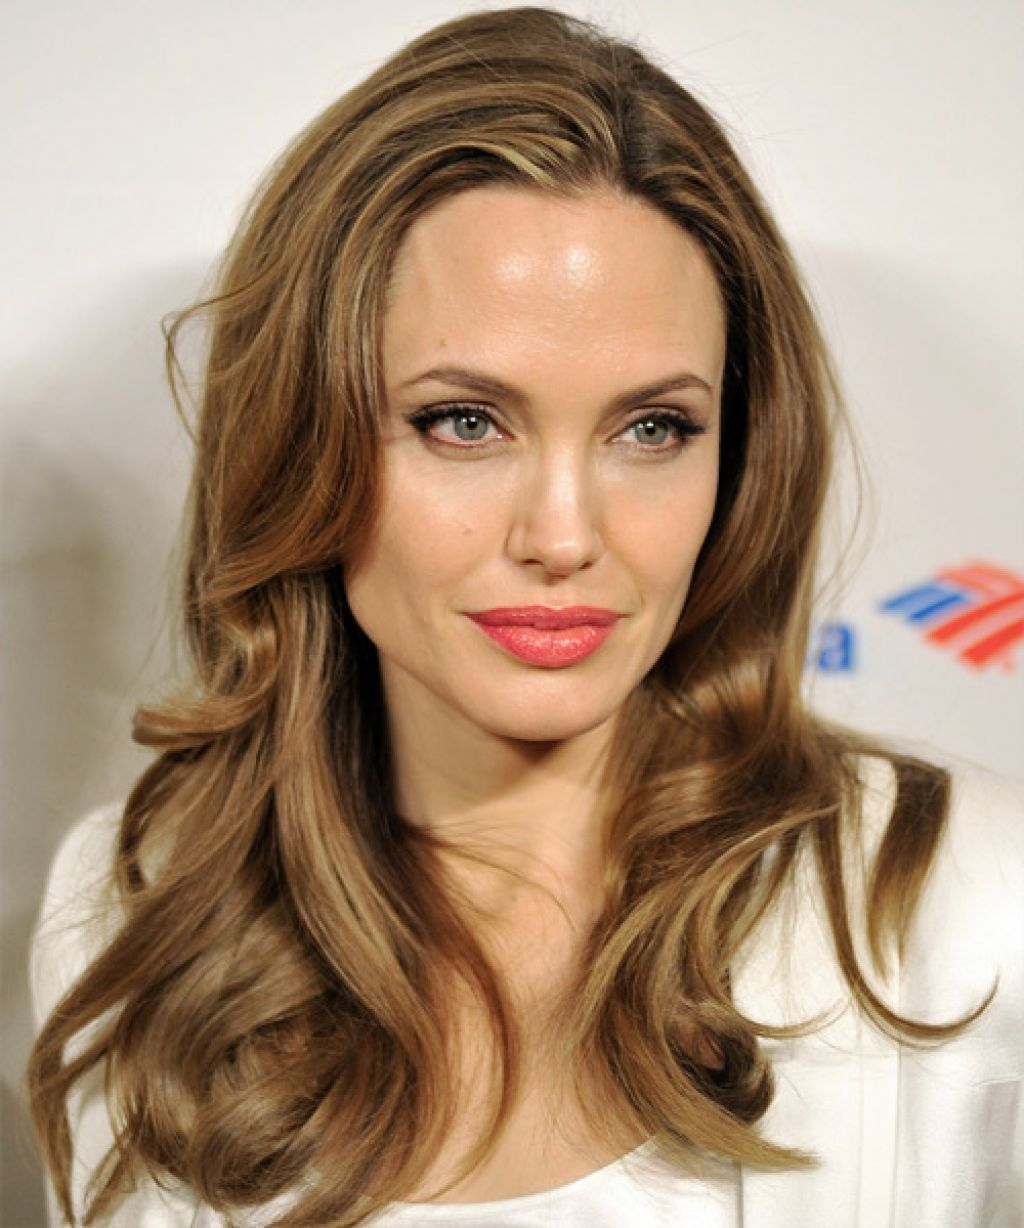 Growing Intended For Most Current Angelina Jolie Medium Hairstyles (Gallery 5 of 20)